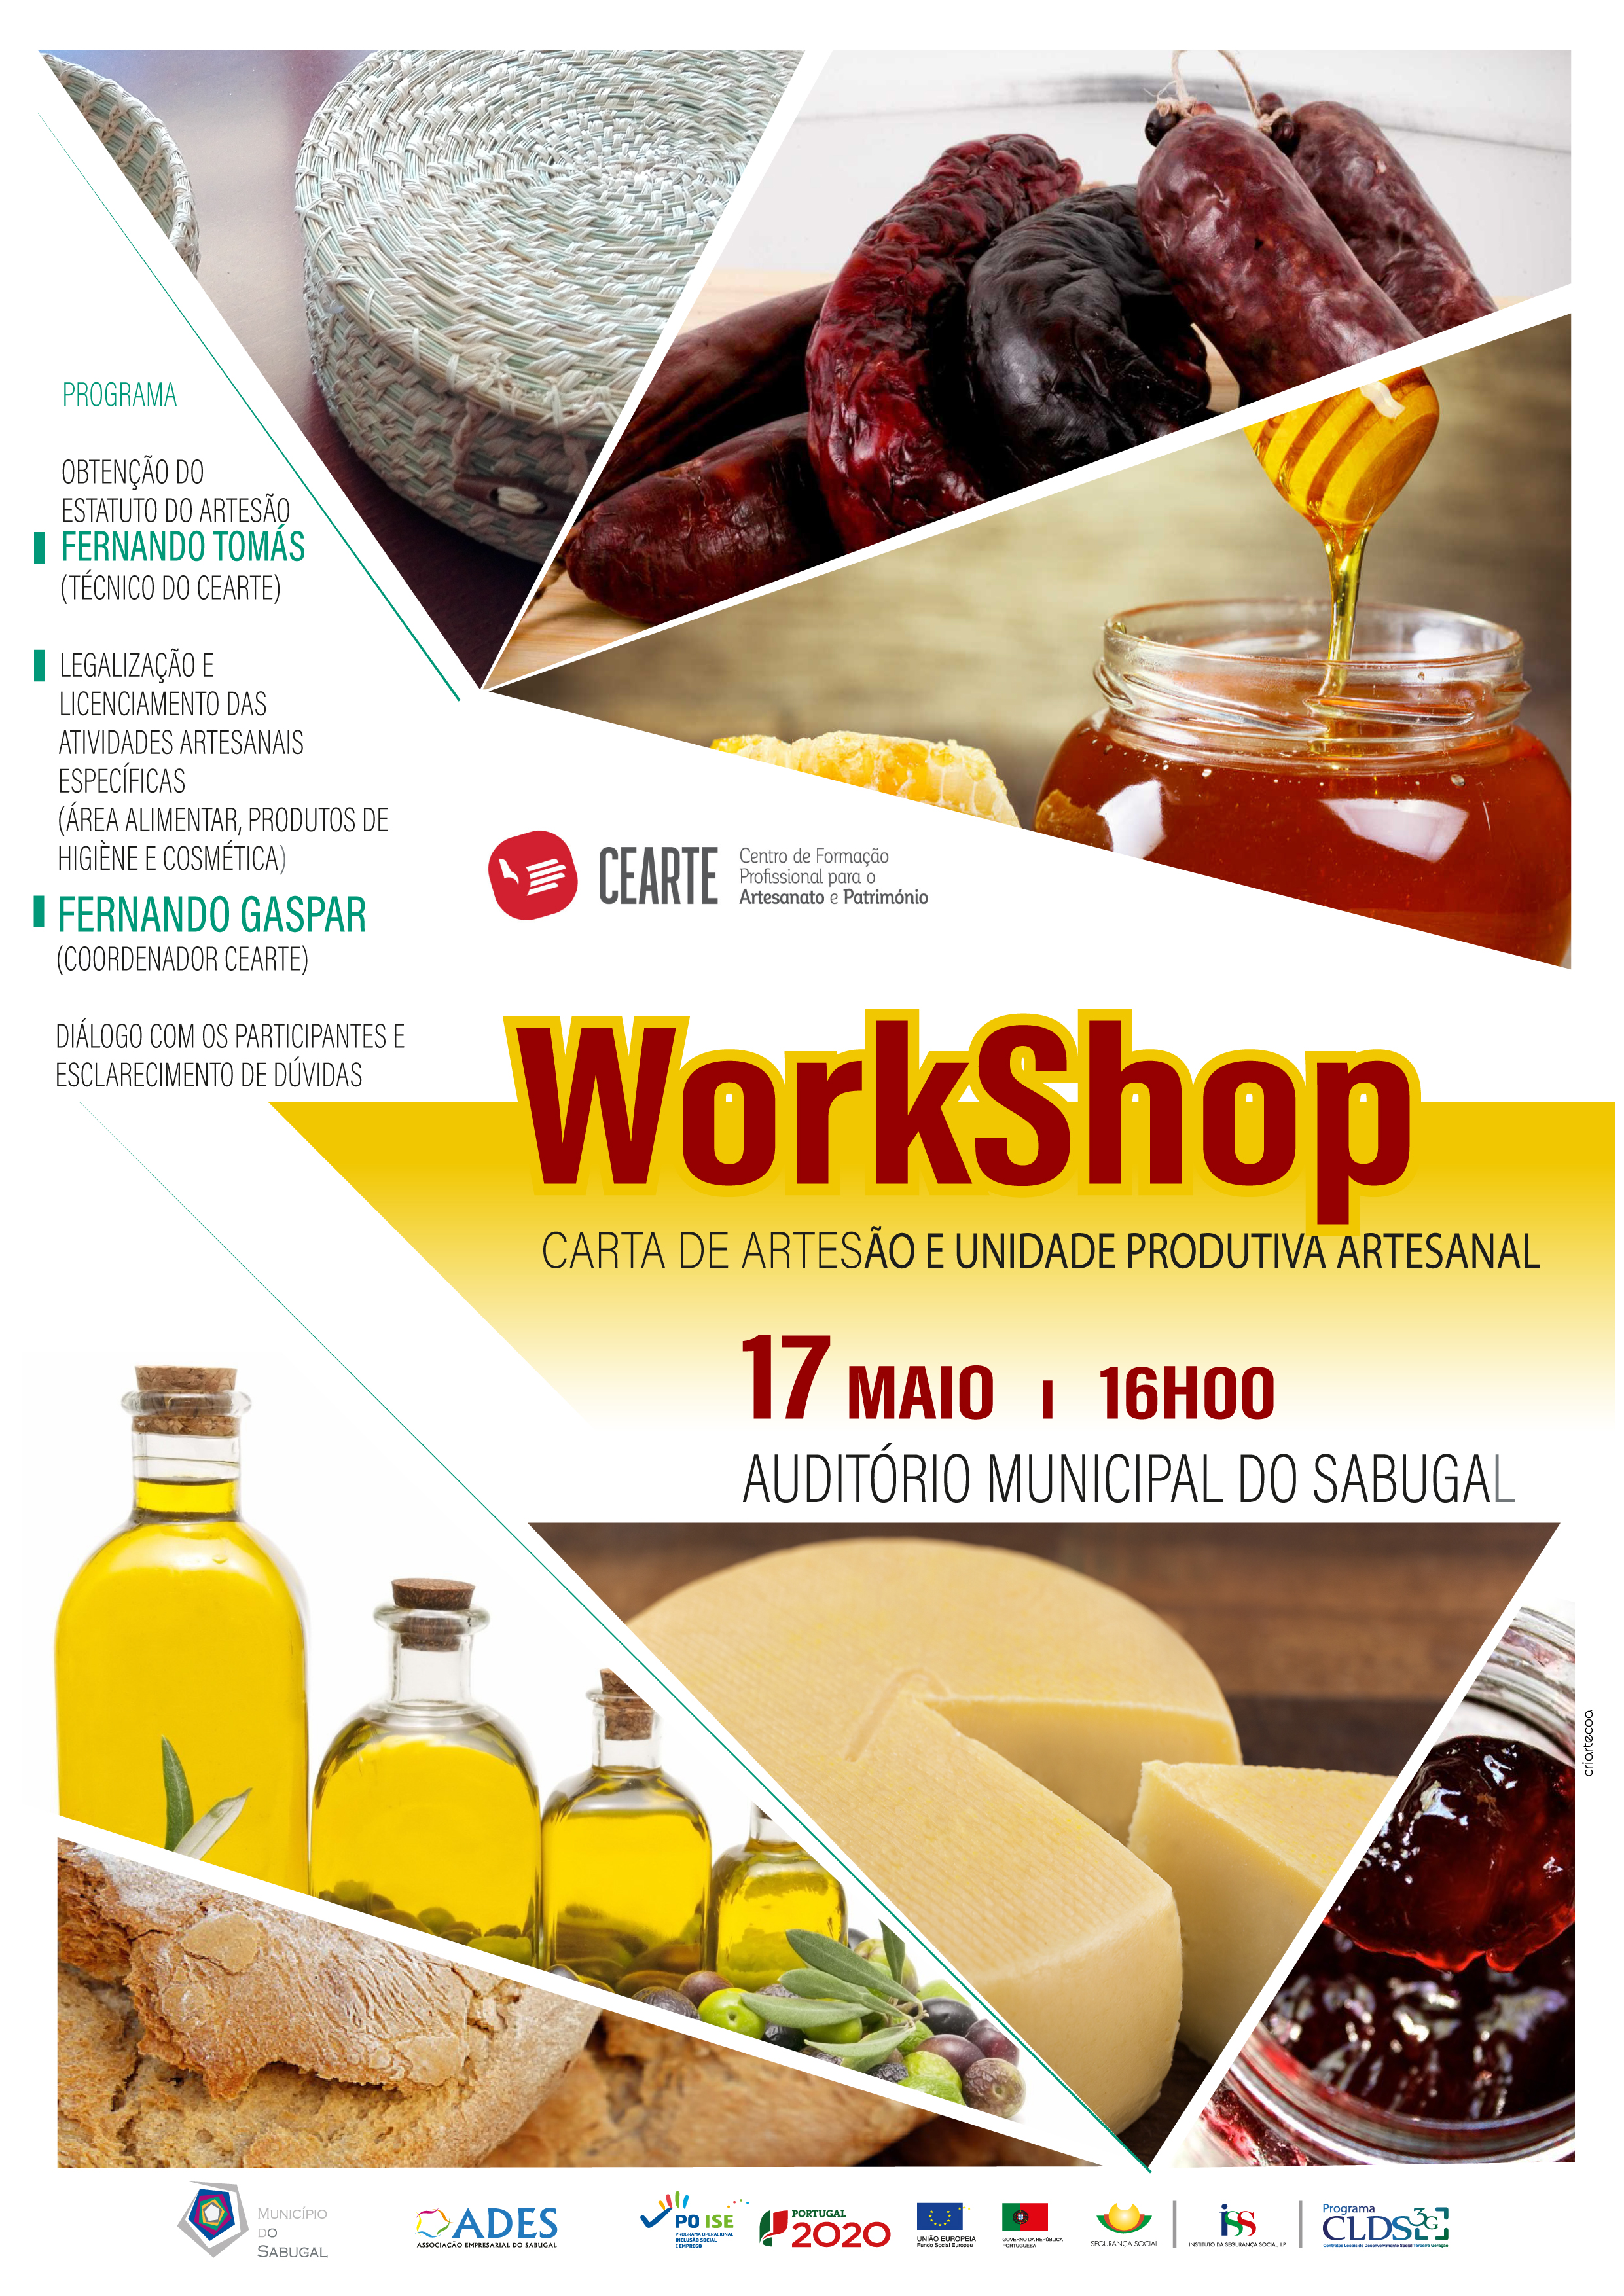 cartaz workshop artesanato